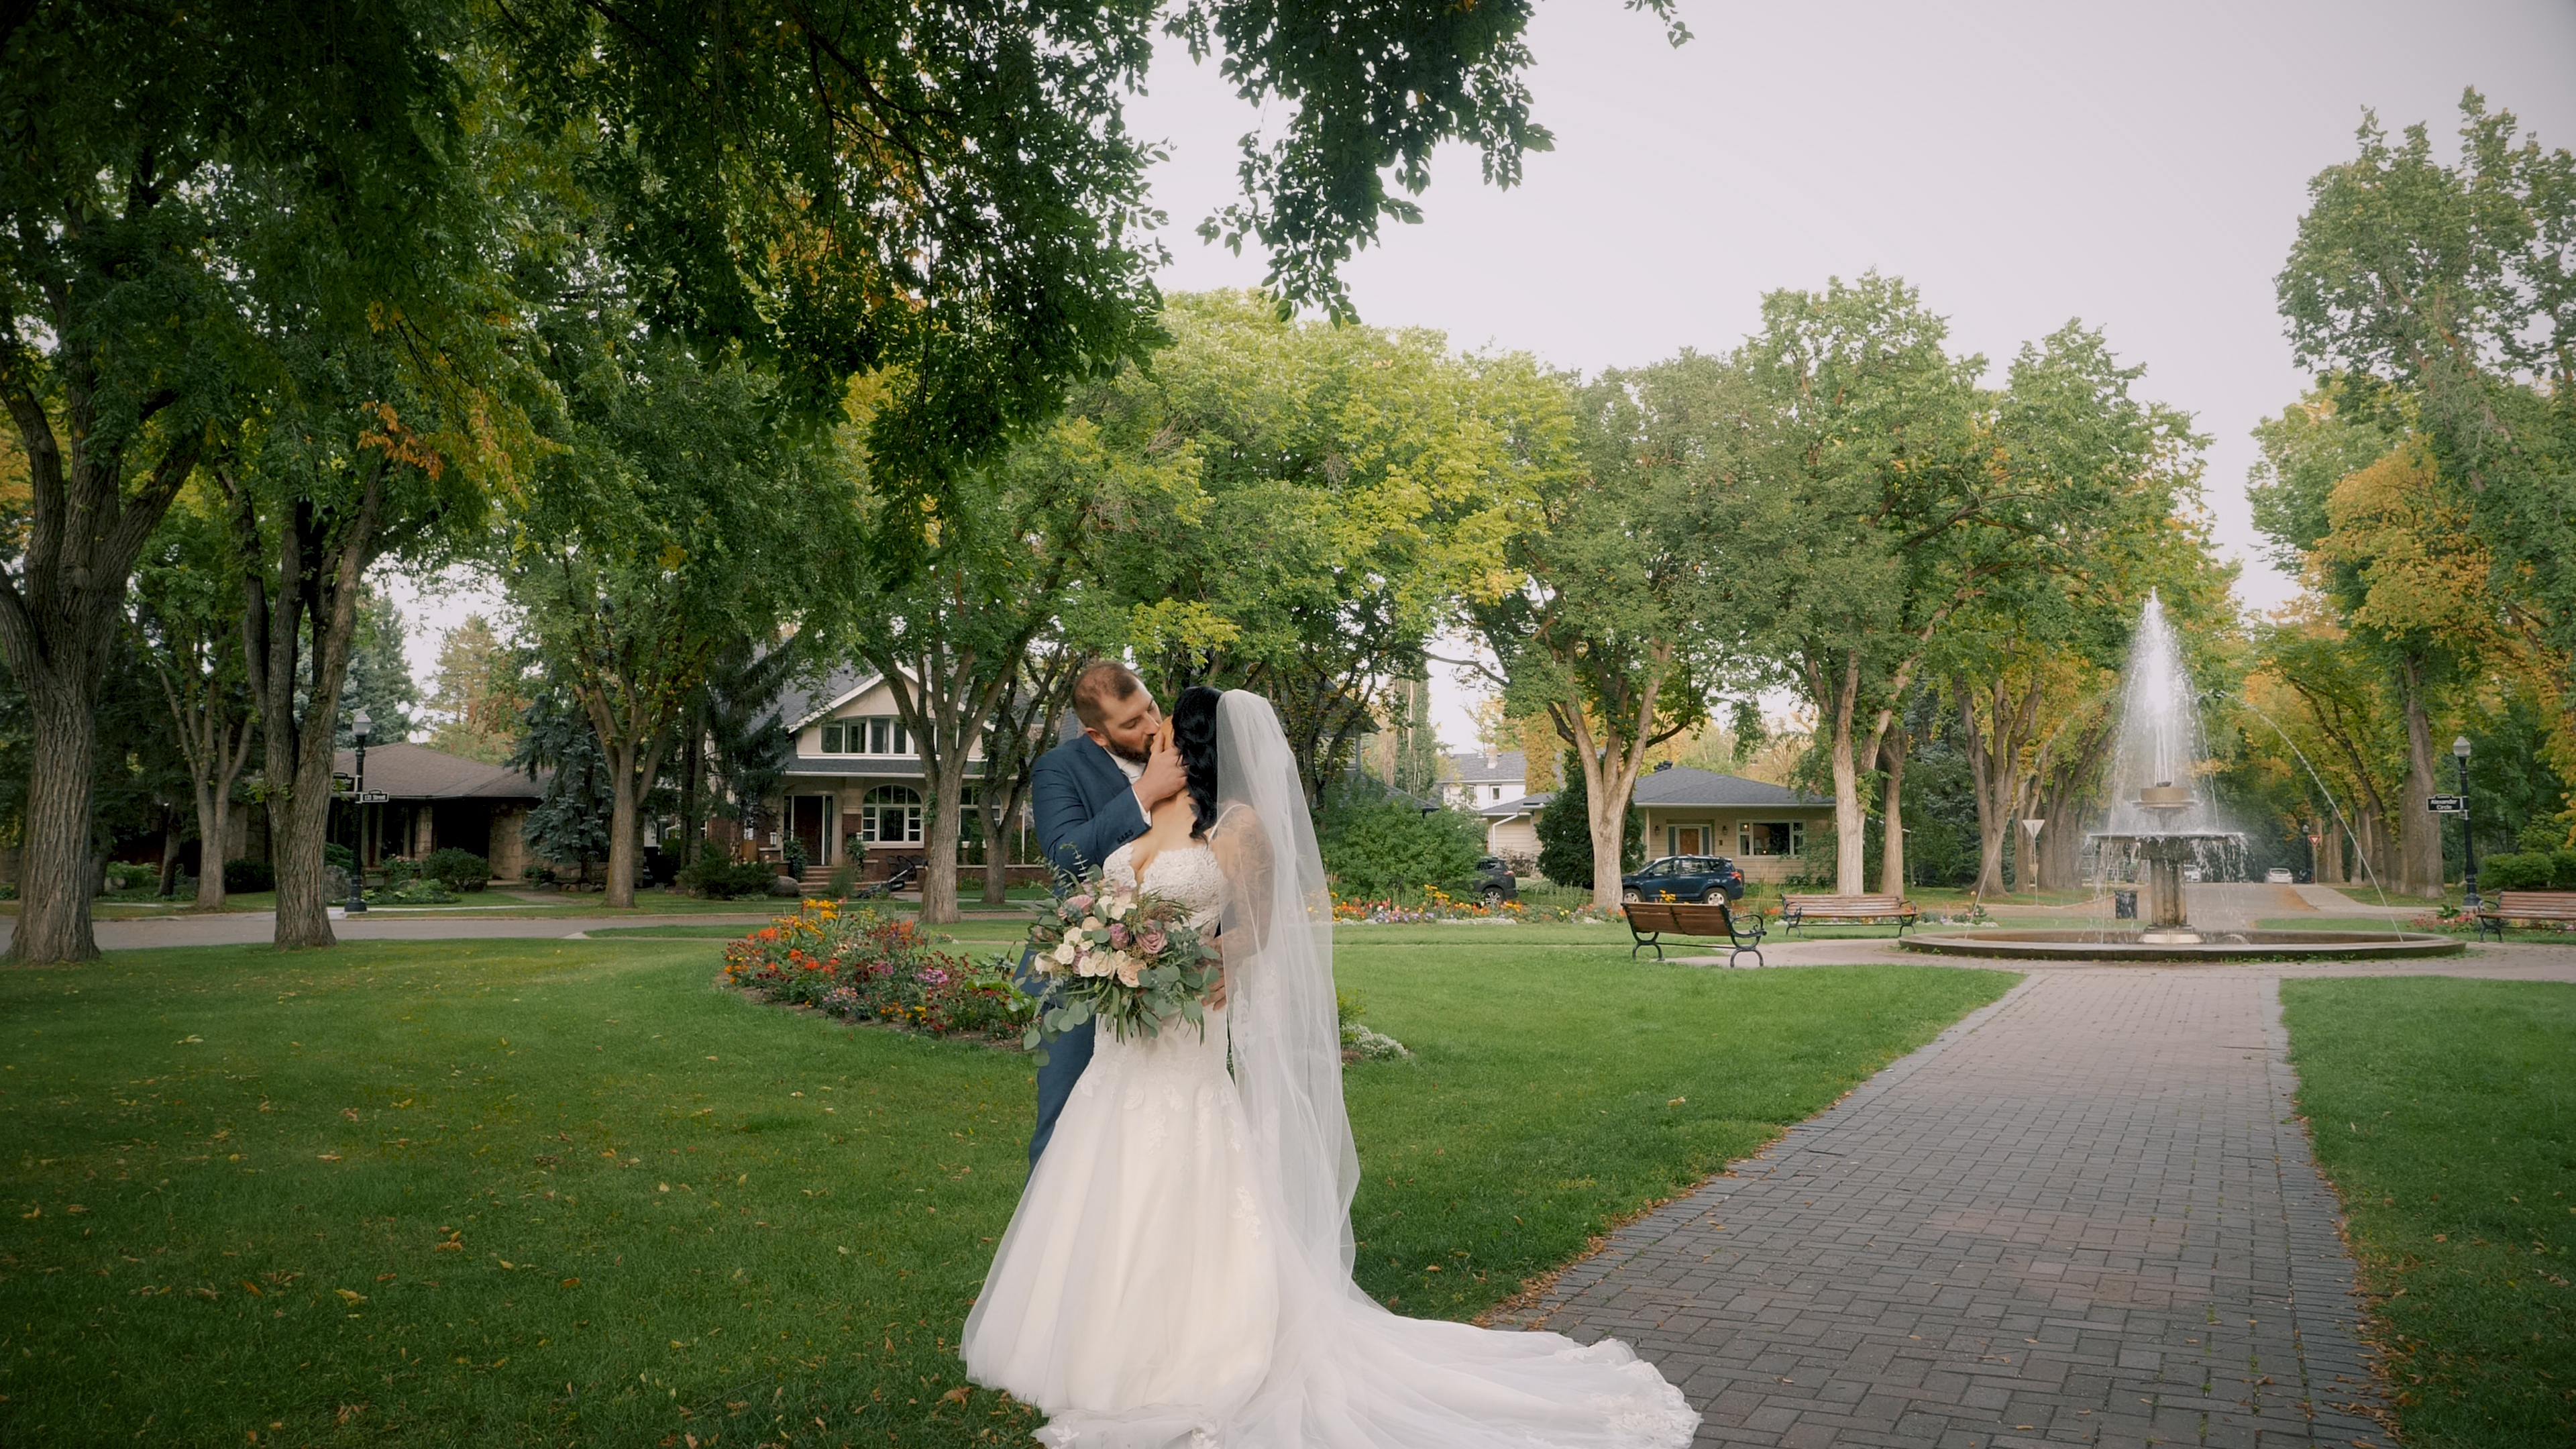 Colin + Kayla | Edmonton, Canada | The Oasis Center